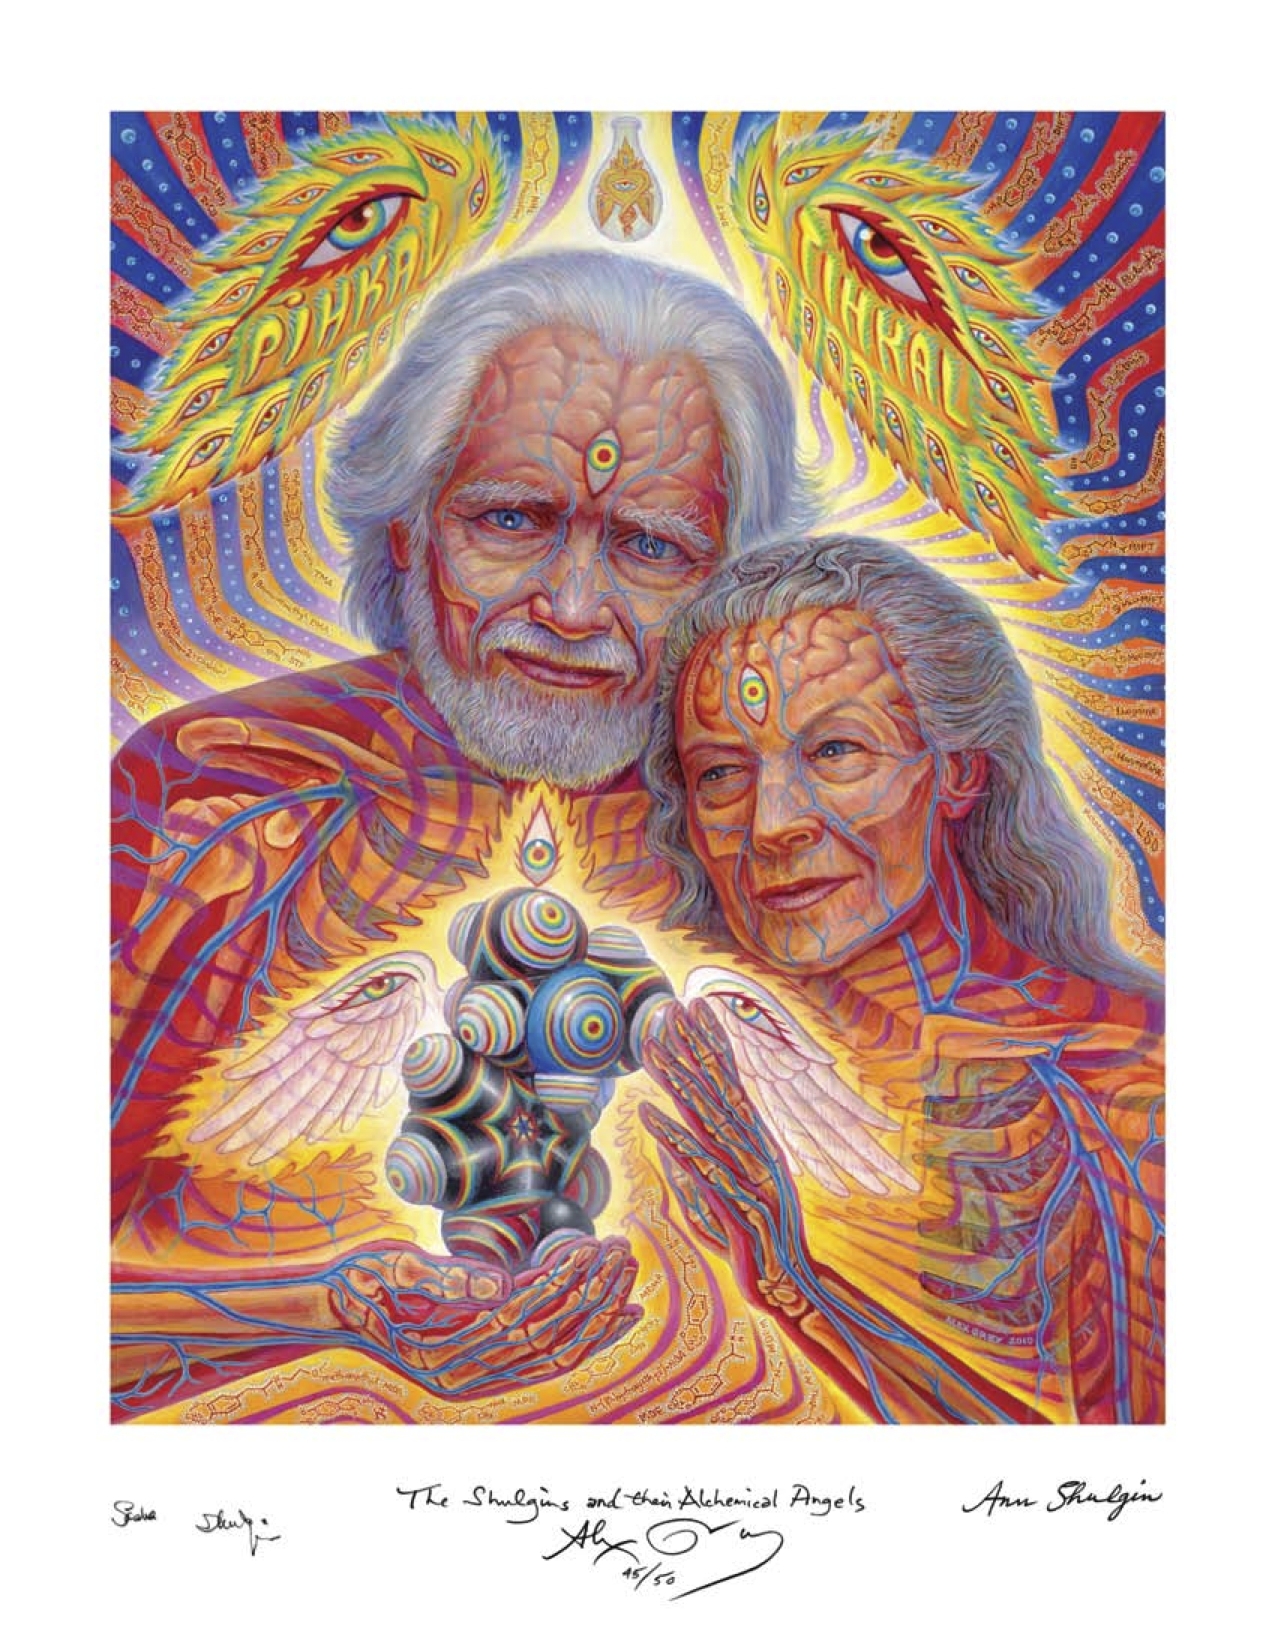 MAPS Bulletin Vol xx No 3: Winter 2010 - Inside Front Cover Image - Psychedelic Art - The Shulgin's and Their Alchemical Angels by Alex Grey